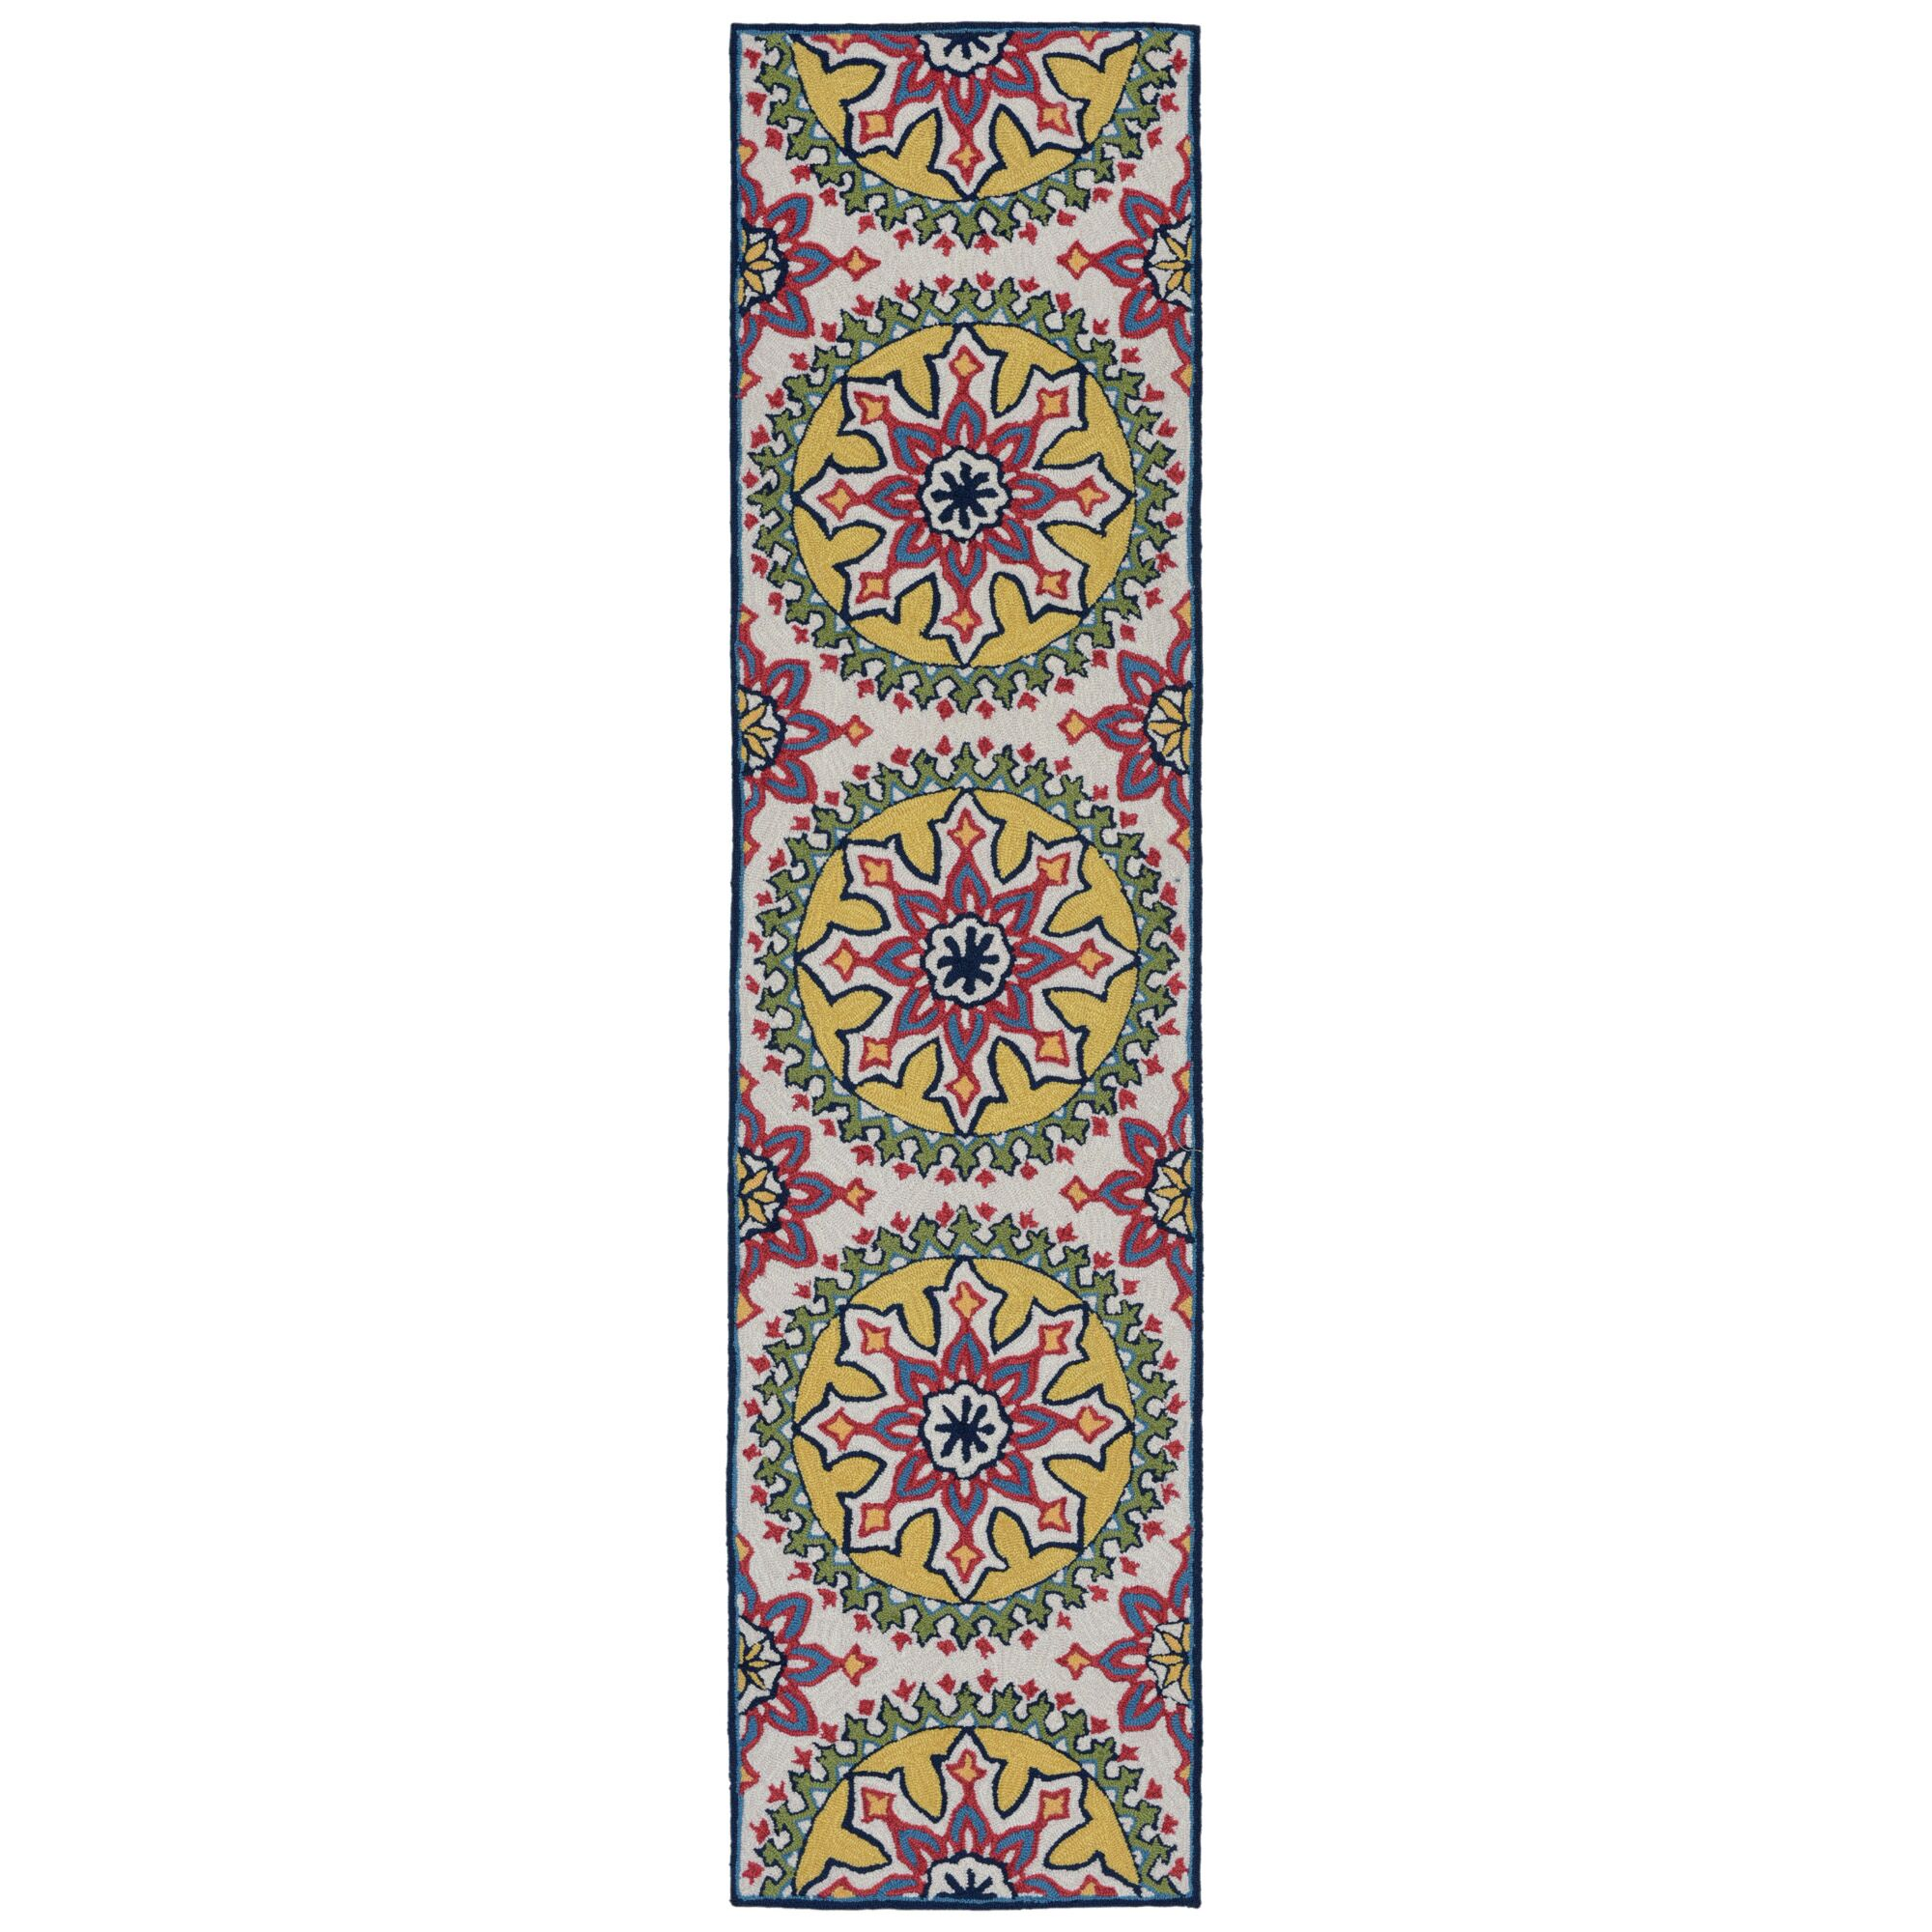 Petterson Moroccan Medallion Hand-Tufted Pink/Yellow Indoor/Outdoor Area Rug Rug Size: Rectangle 5' x 7'6